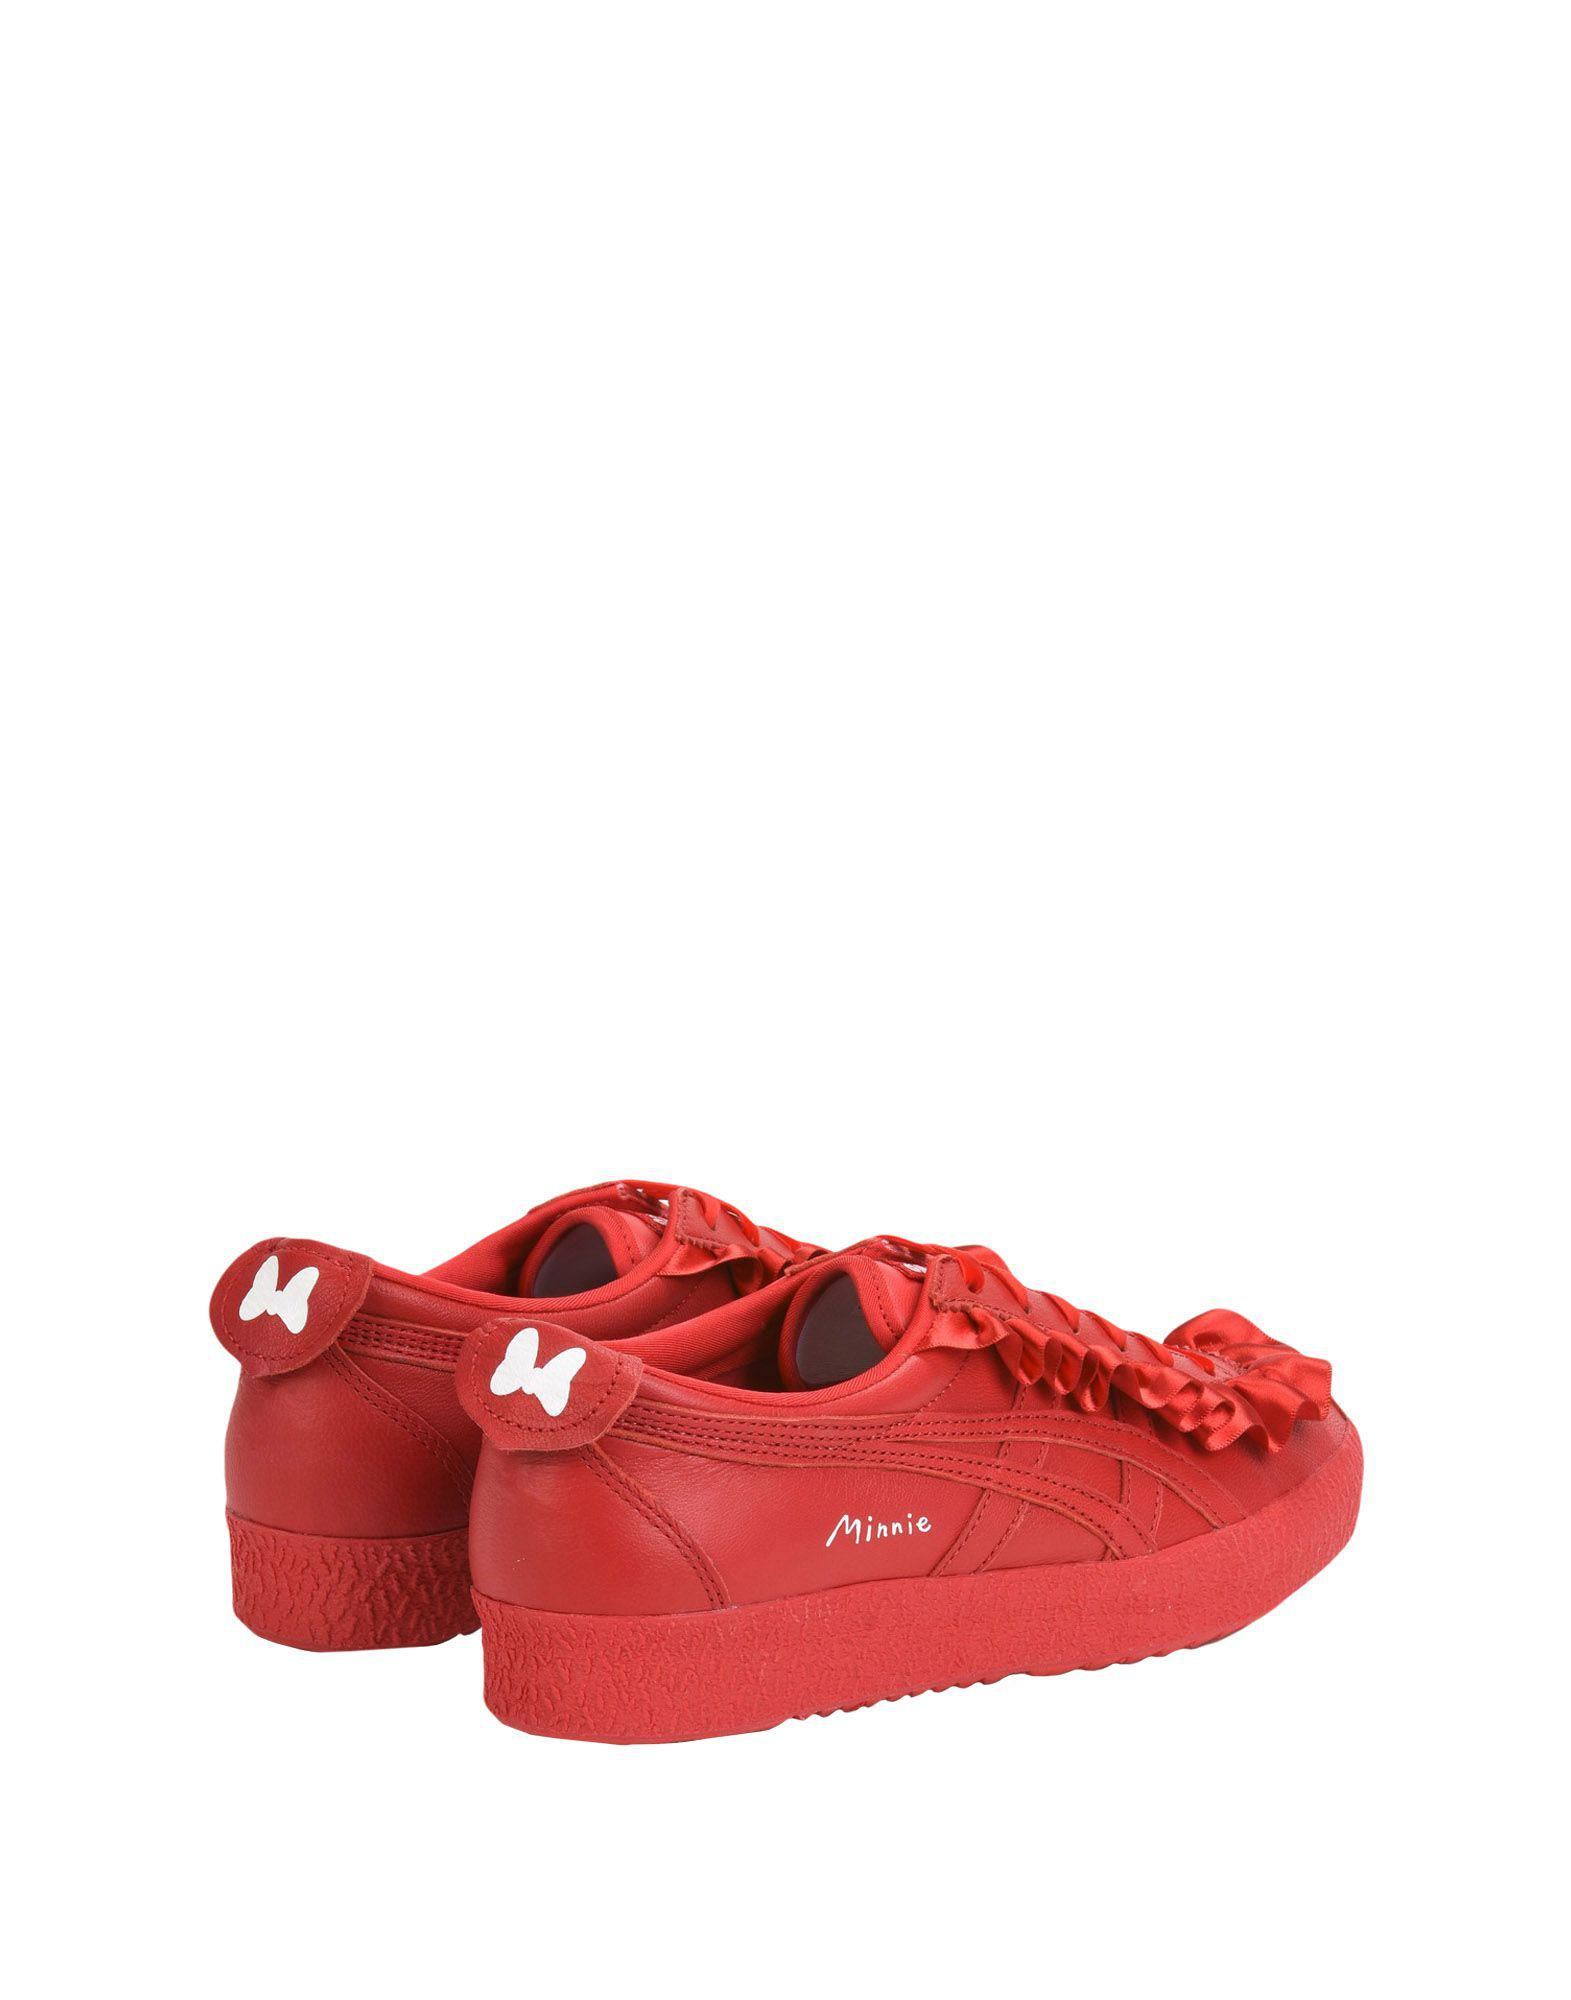 Onitsuka Tiger Satin Low-tops & Sneakers in Red